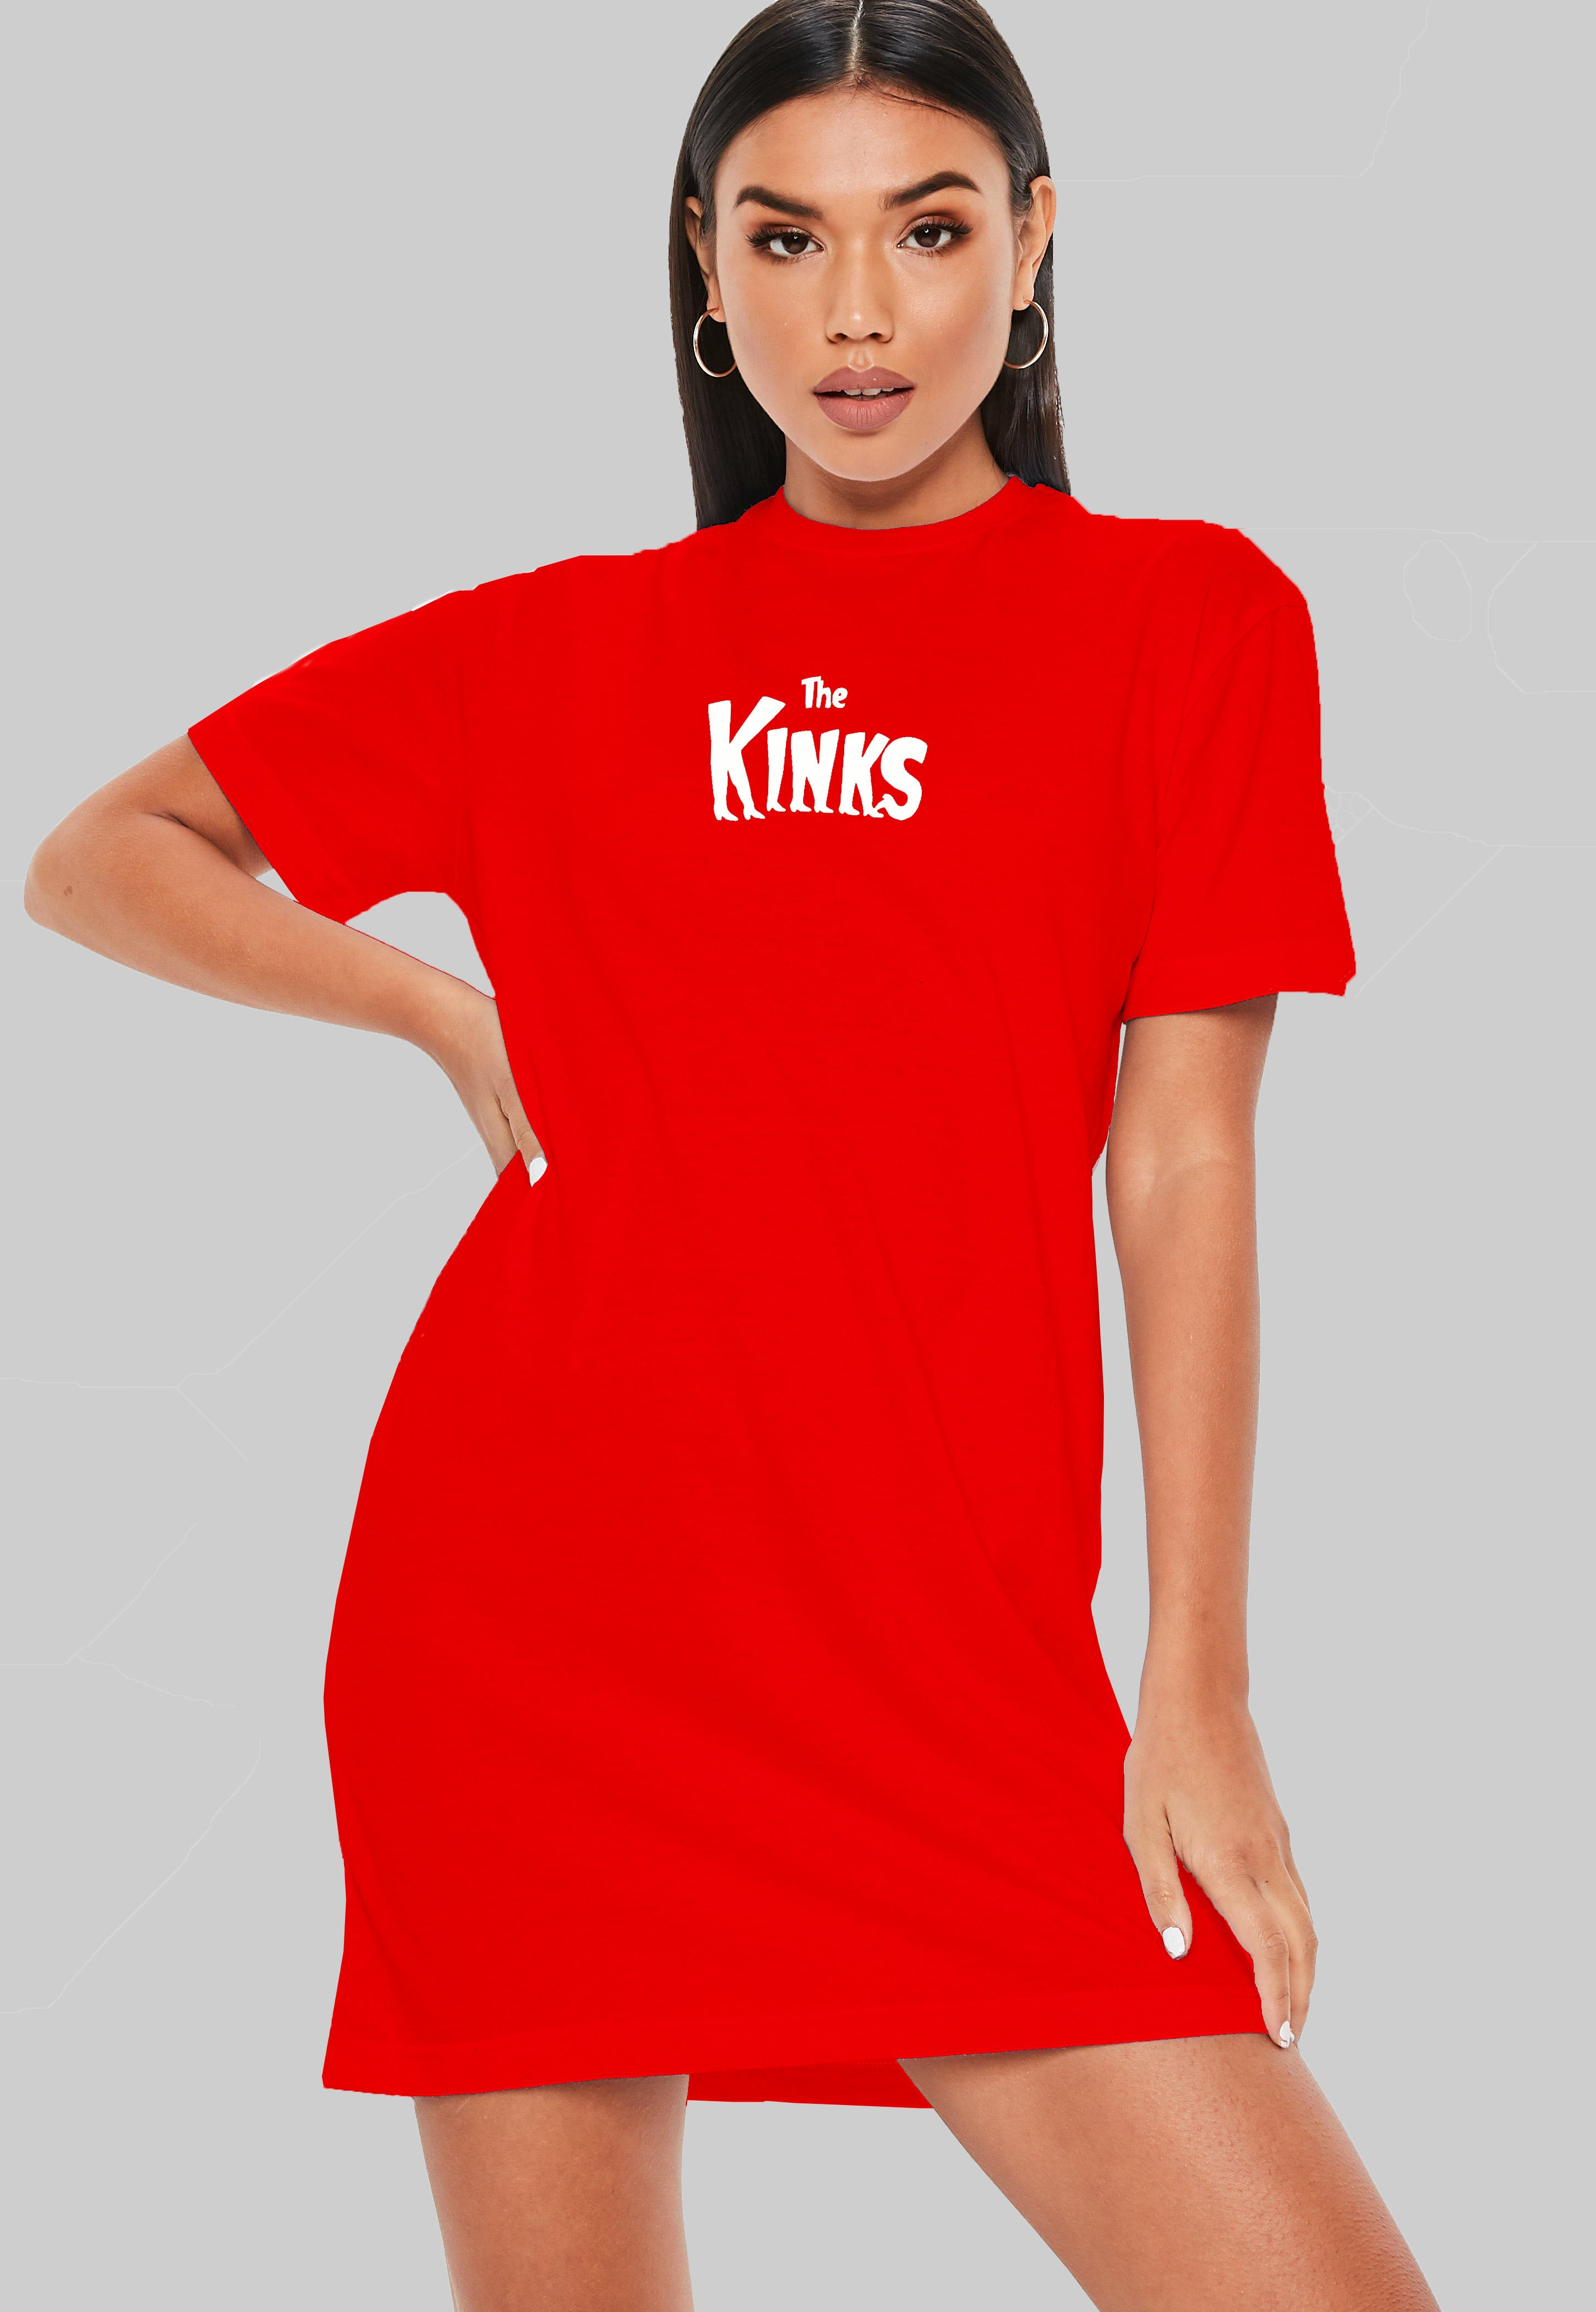 The KinksT-Shirt Dress